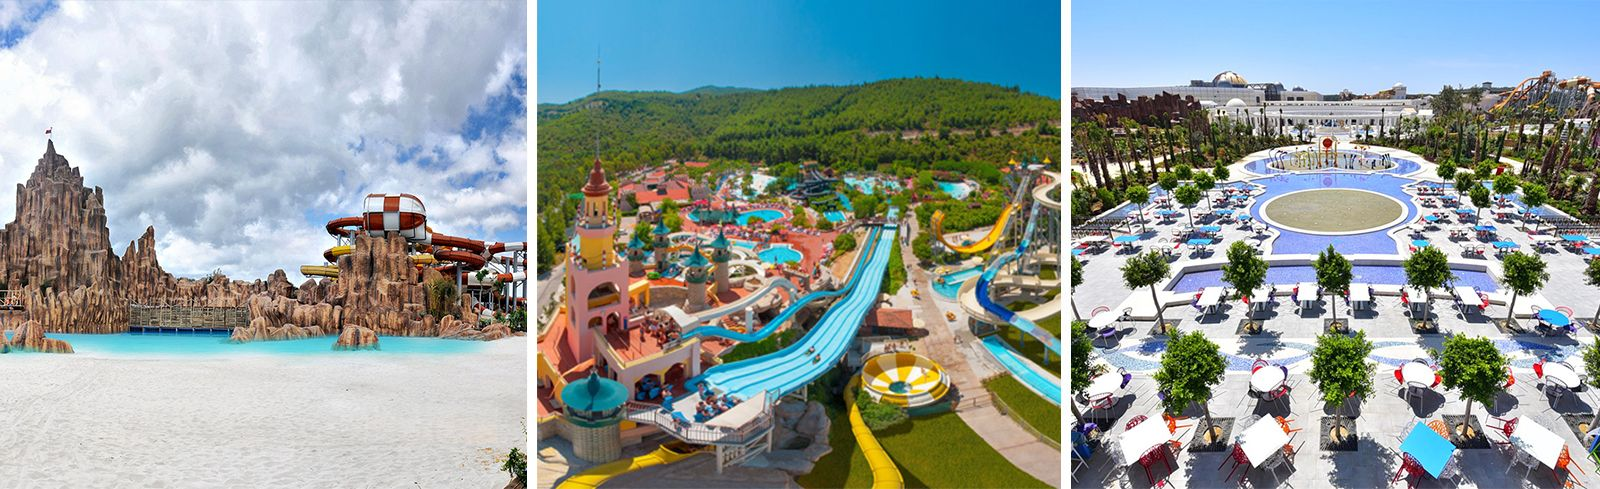 The Land of Legends Theme Park